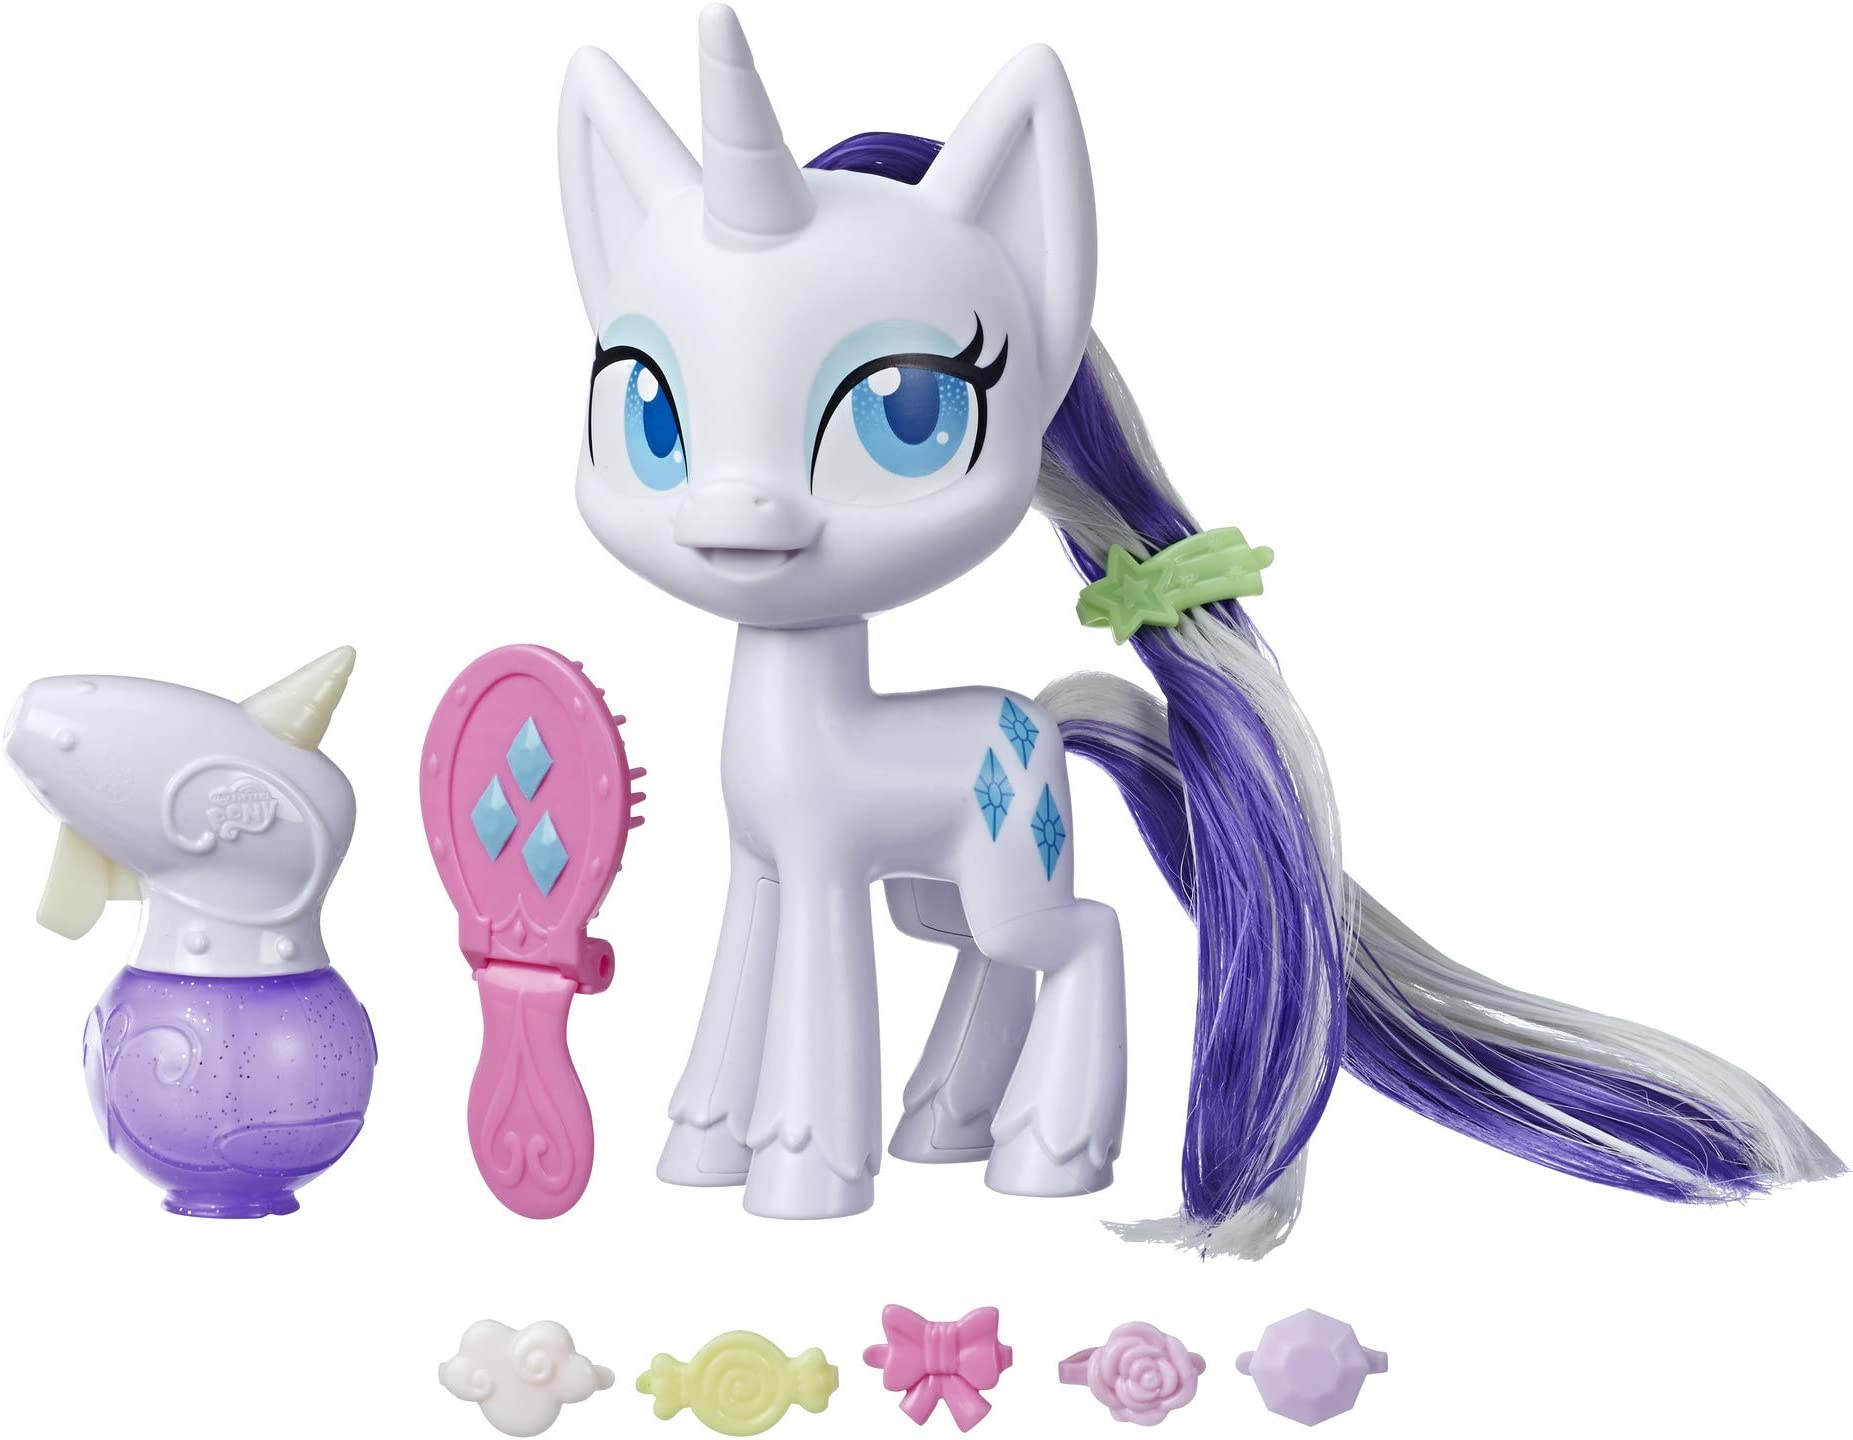 "My Little Pony Magical Mane Rarity Toy -- 6.5"" Hair-Styling Pony Figure with Hair That Grows & Changes Color, 10 Surprise Accessories"